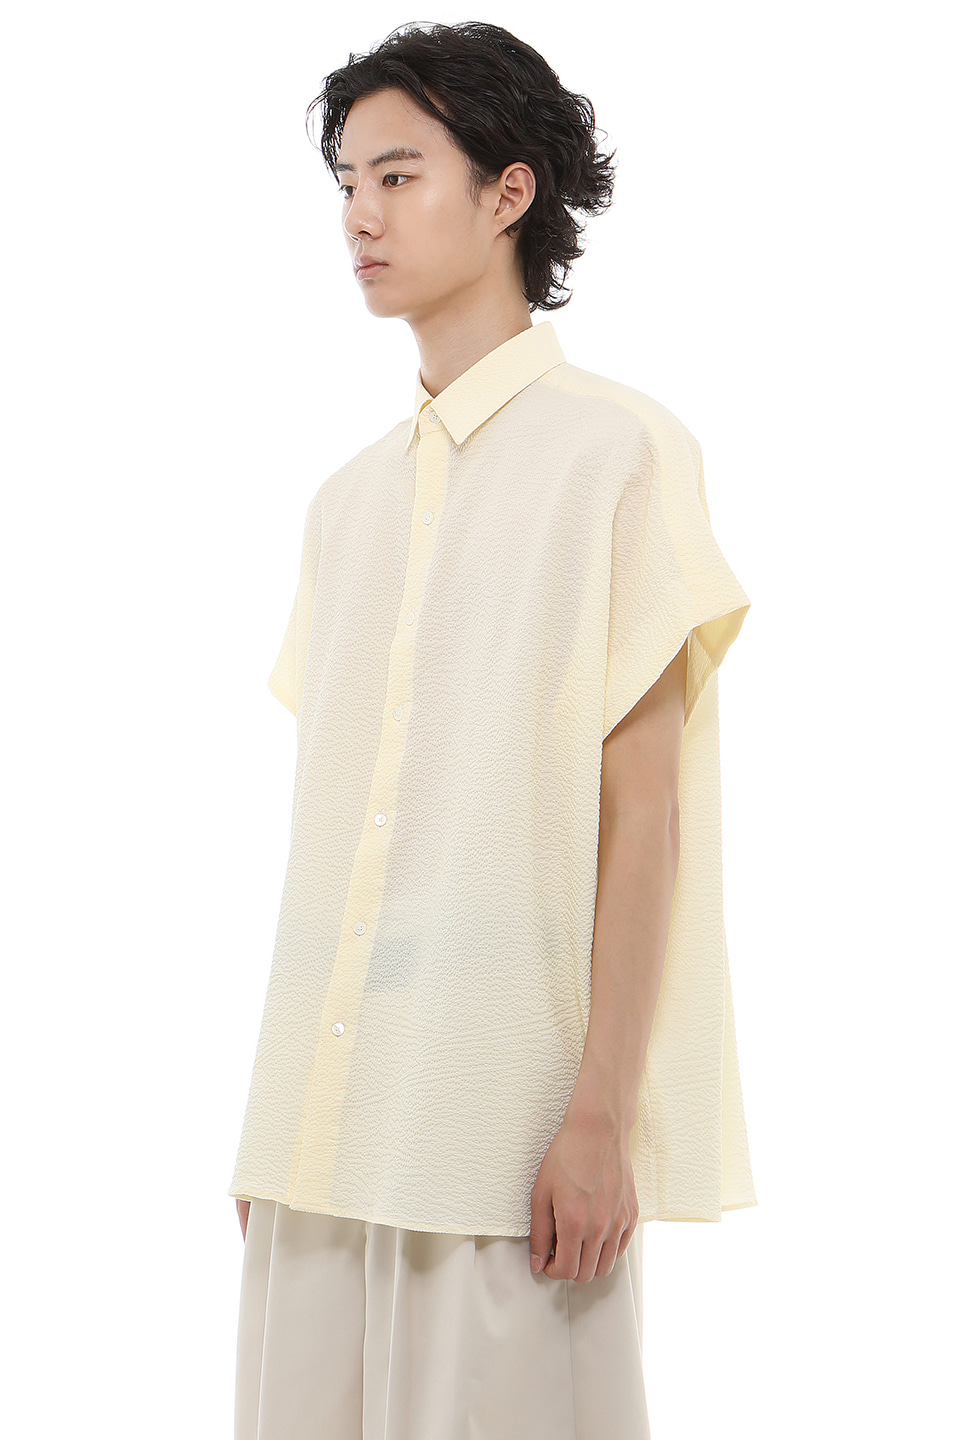 S007 / Seersucker Collar Over Sleeveless Yellow Shirts